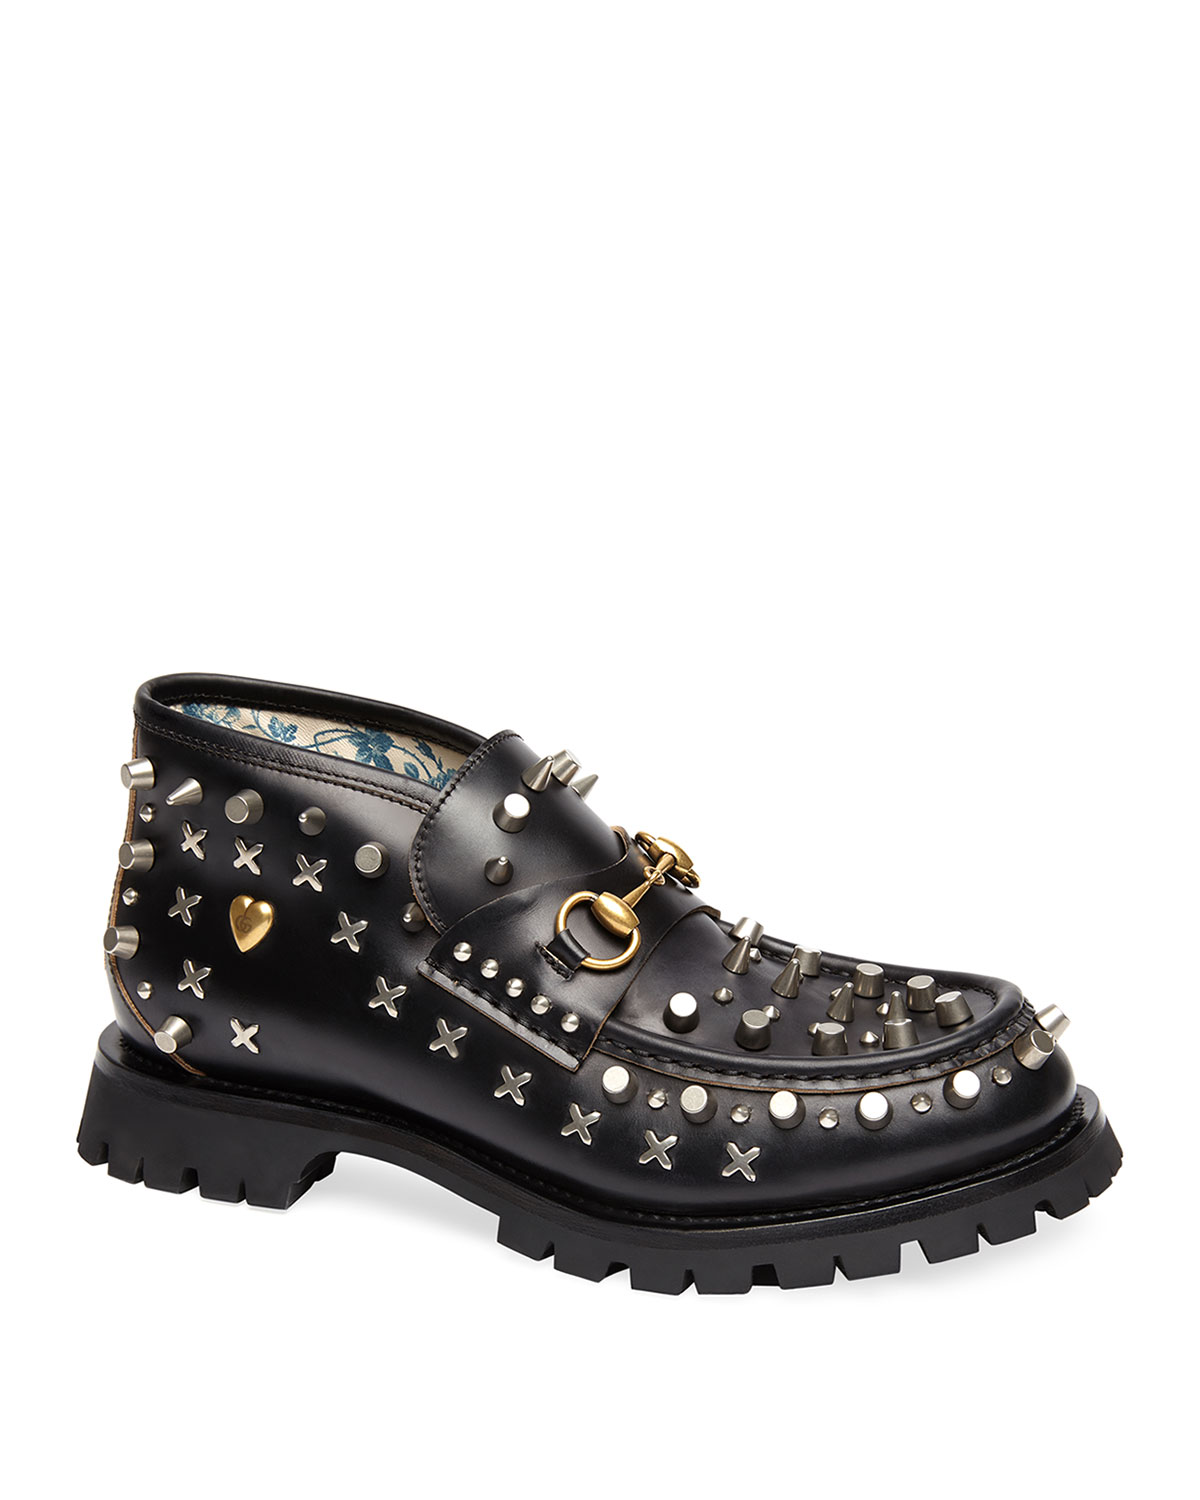 9f9a8be7b47 Gucci Men s Studded Leather Ankle Boots